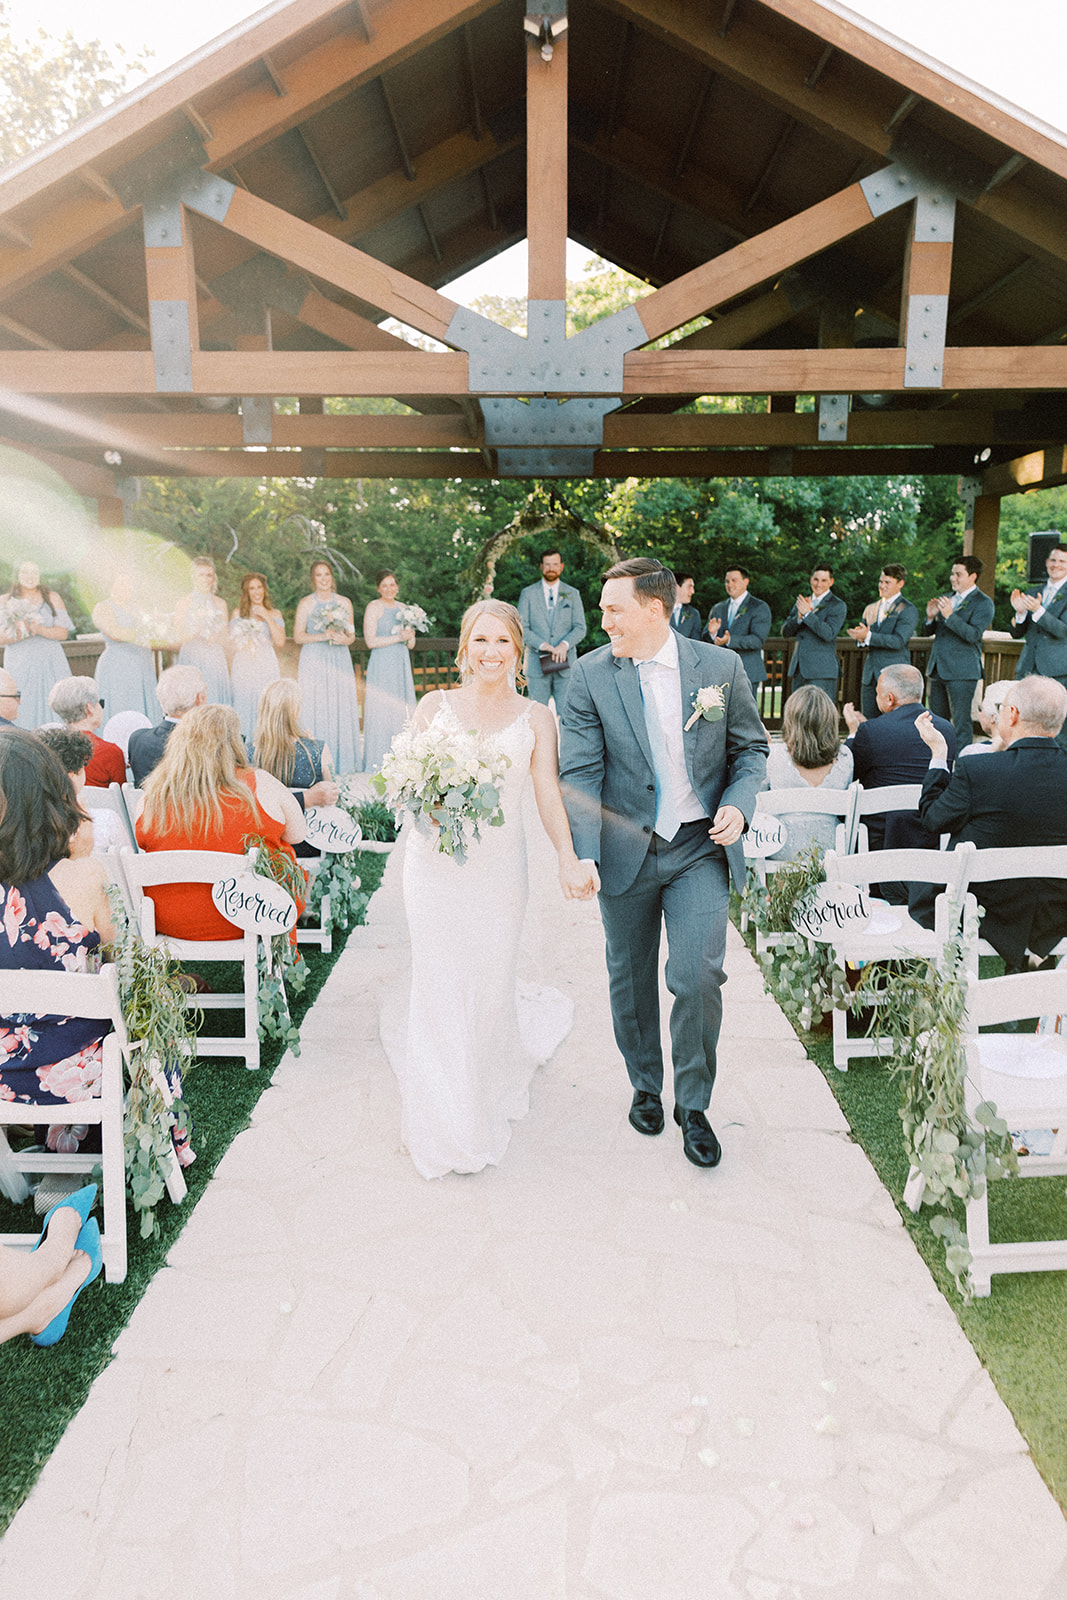 Wedding ceremony exit photos: | Romantic blue Texas wedding at Spring Venue by Alexa Kay Events